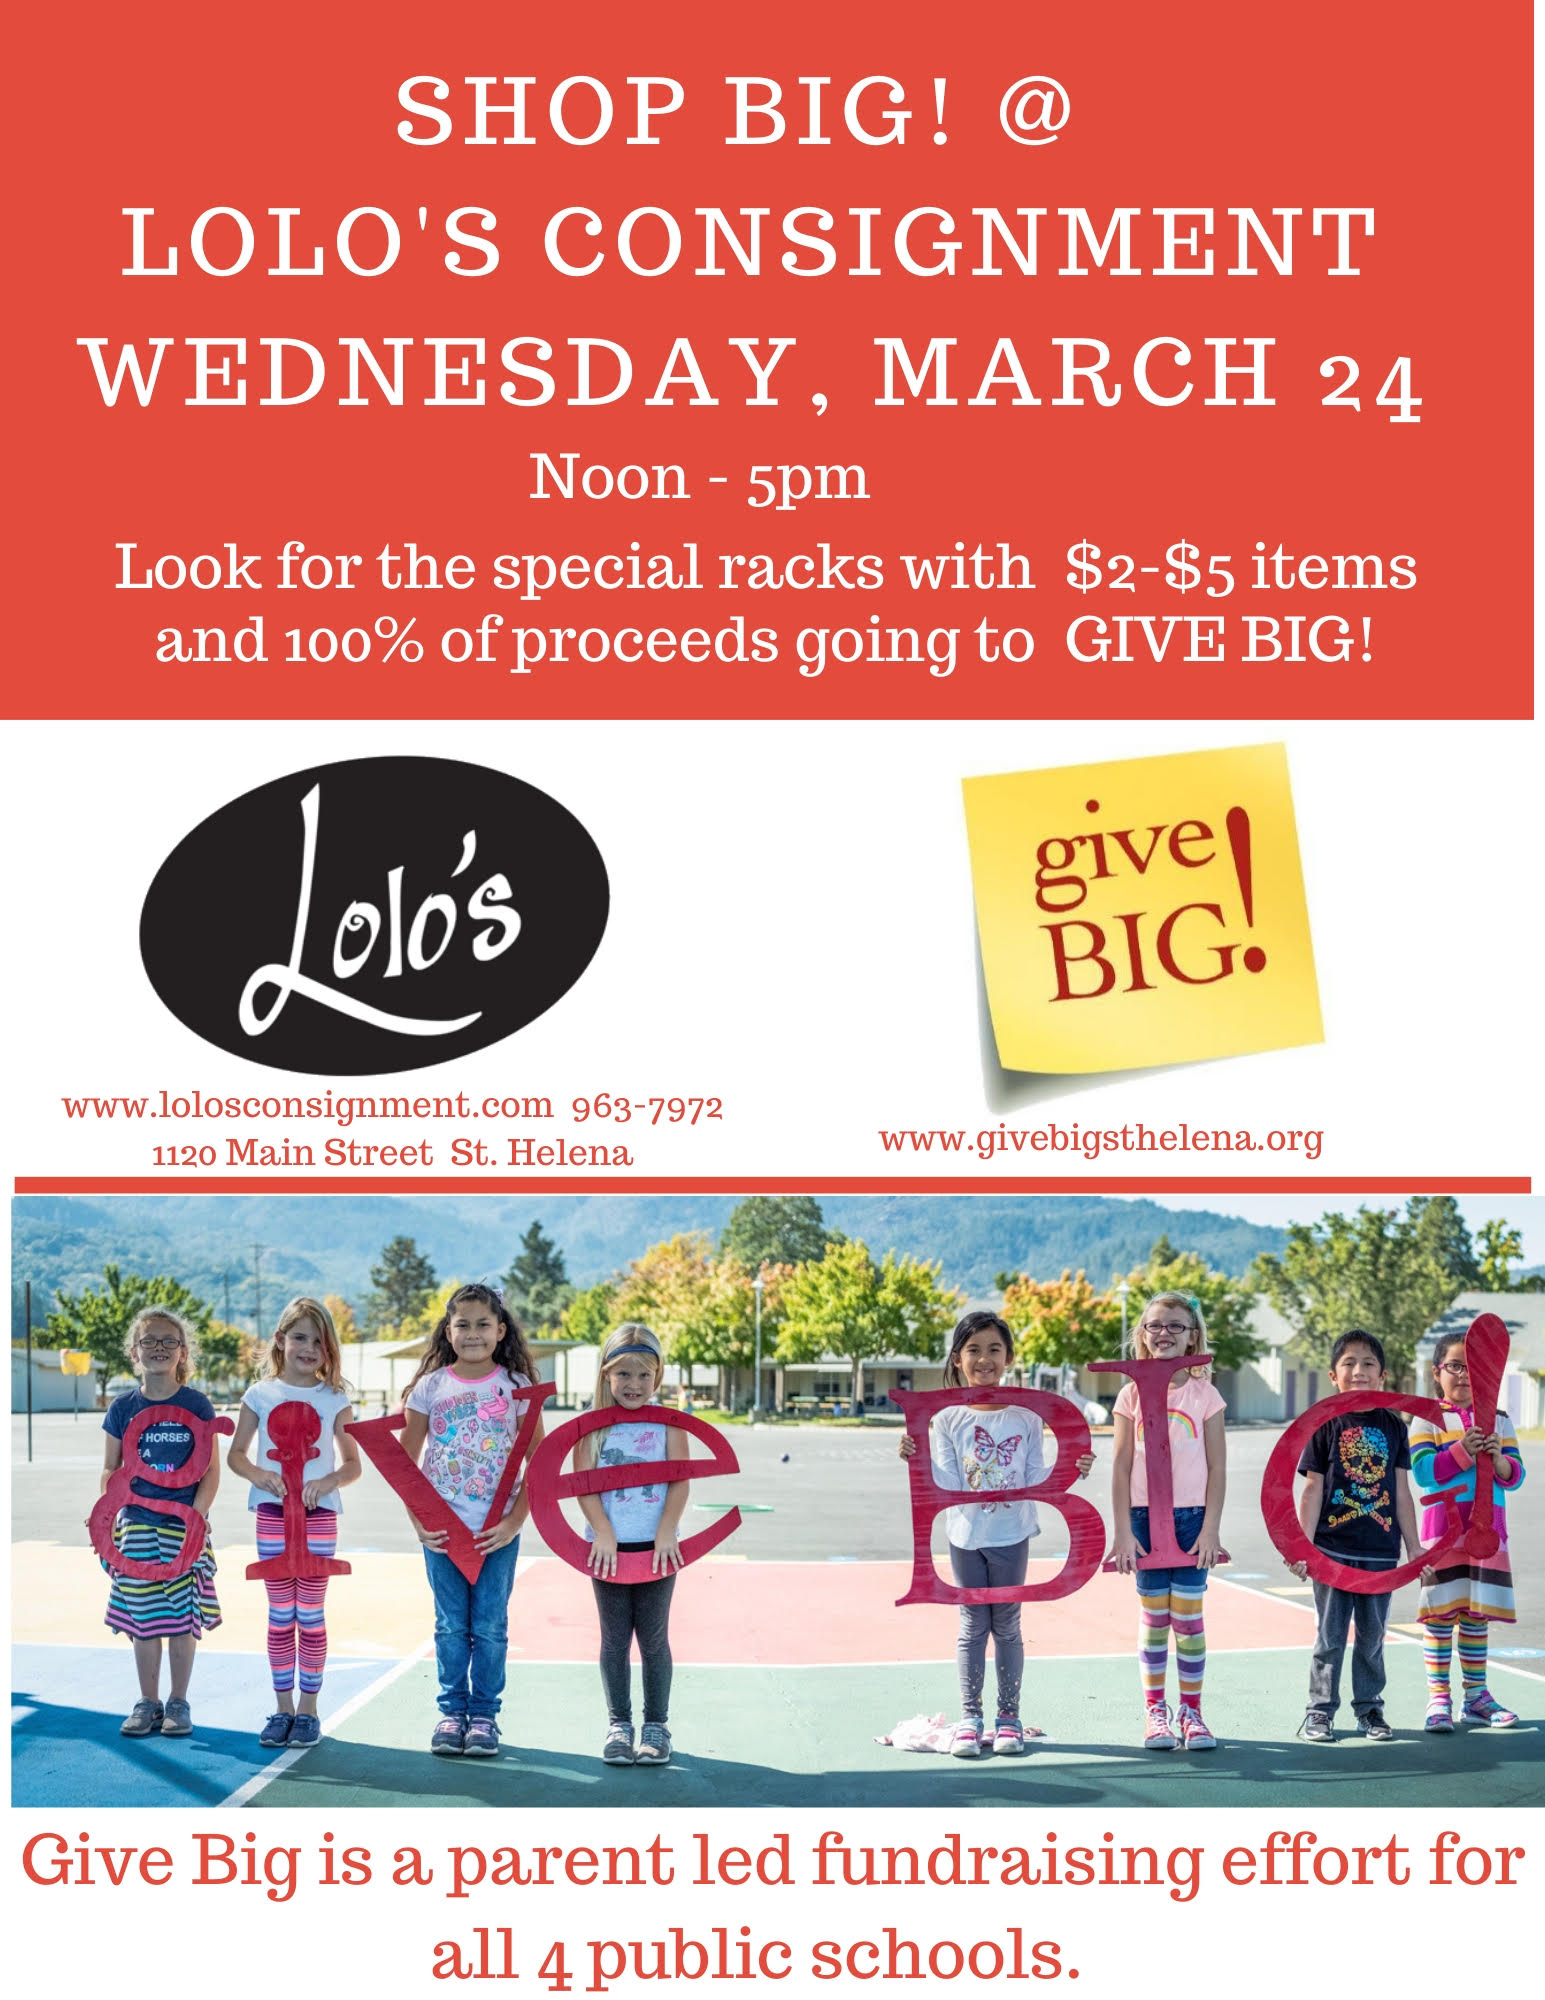 Shop Big! at Lolo's Consignment, March 24